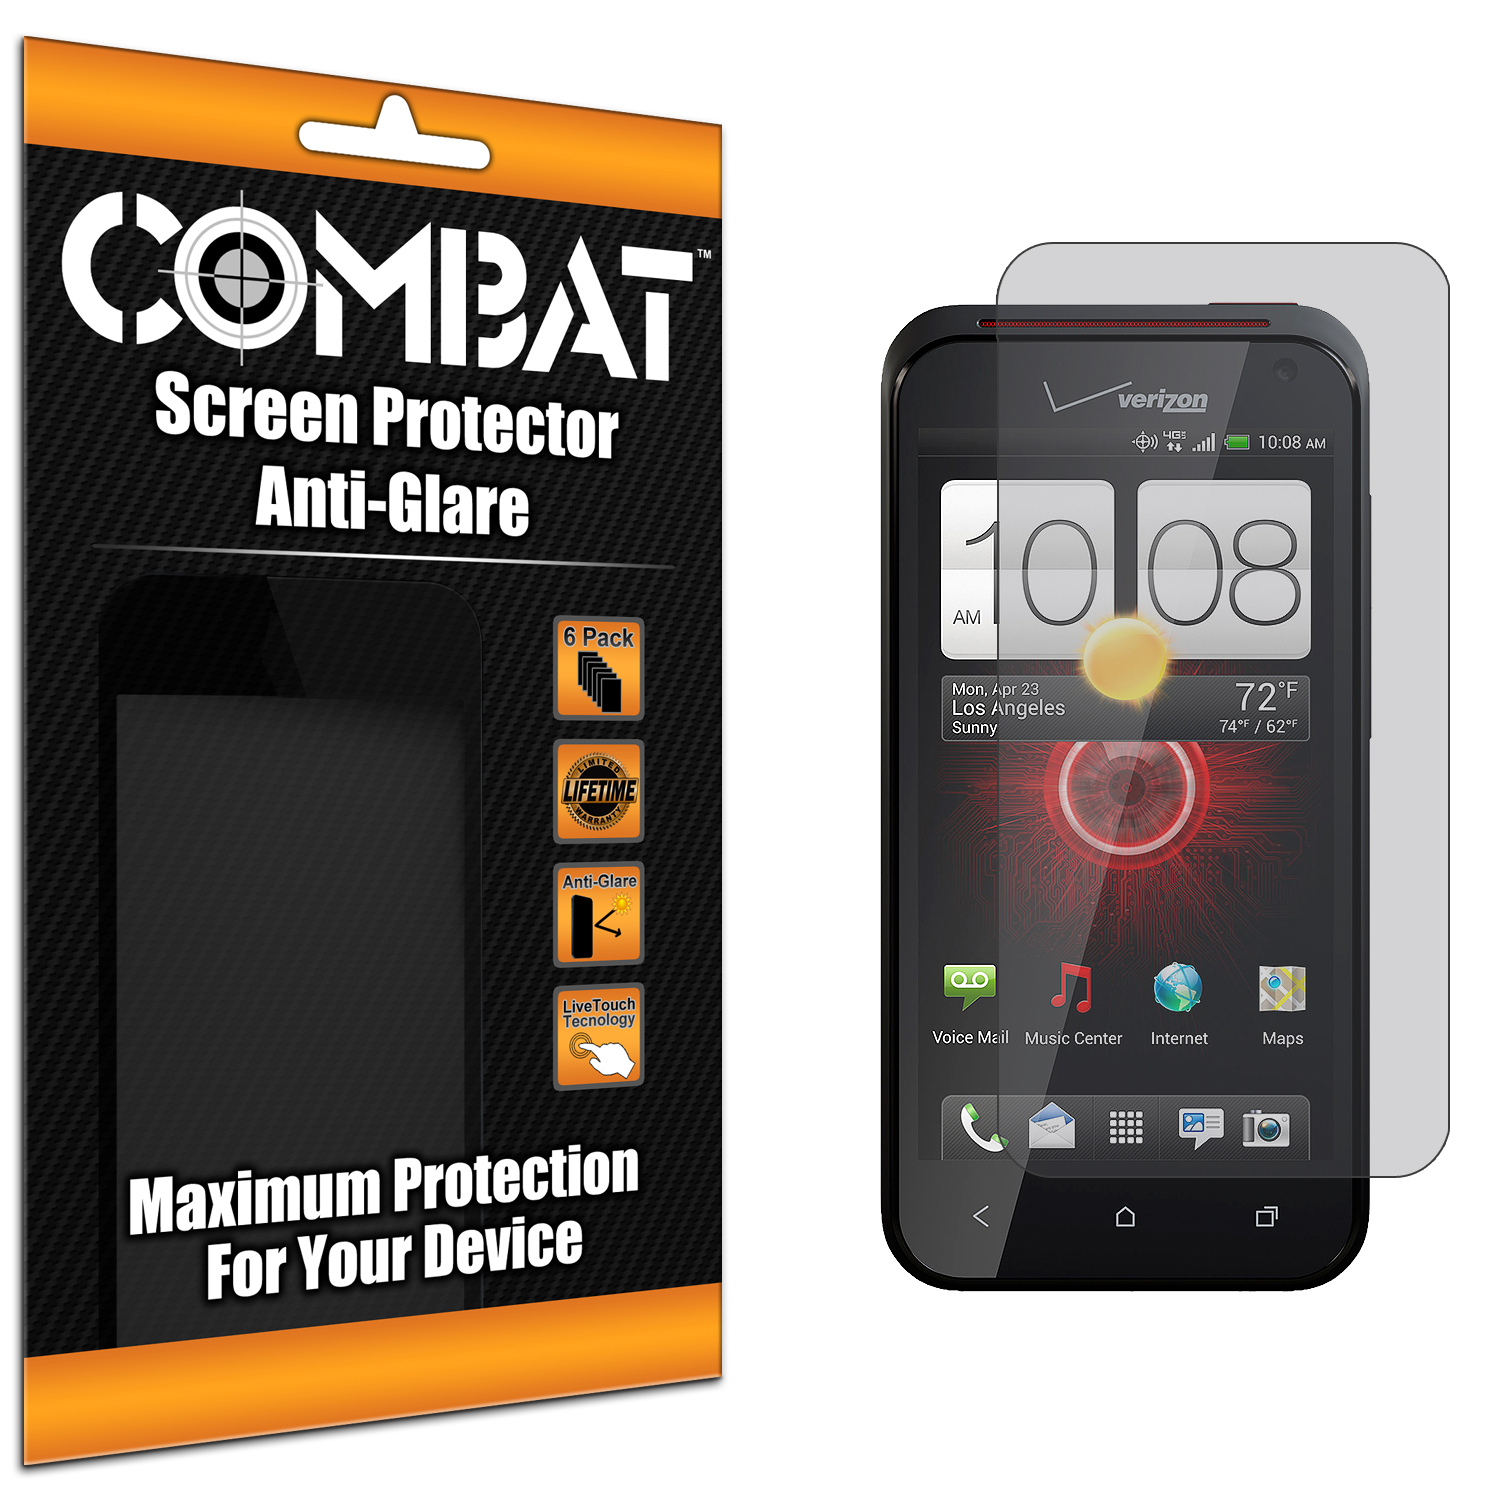 HTC Droid Incredible 4G LTE 6410 Combat 6 Pack Anti-Glare Matte Screen Protector